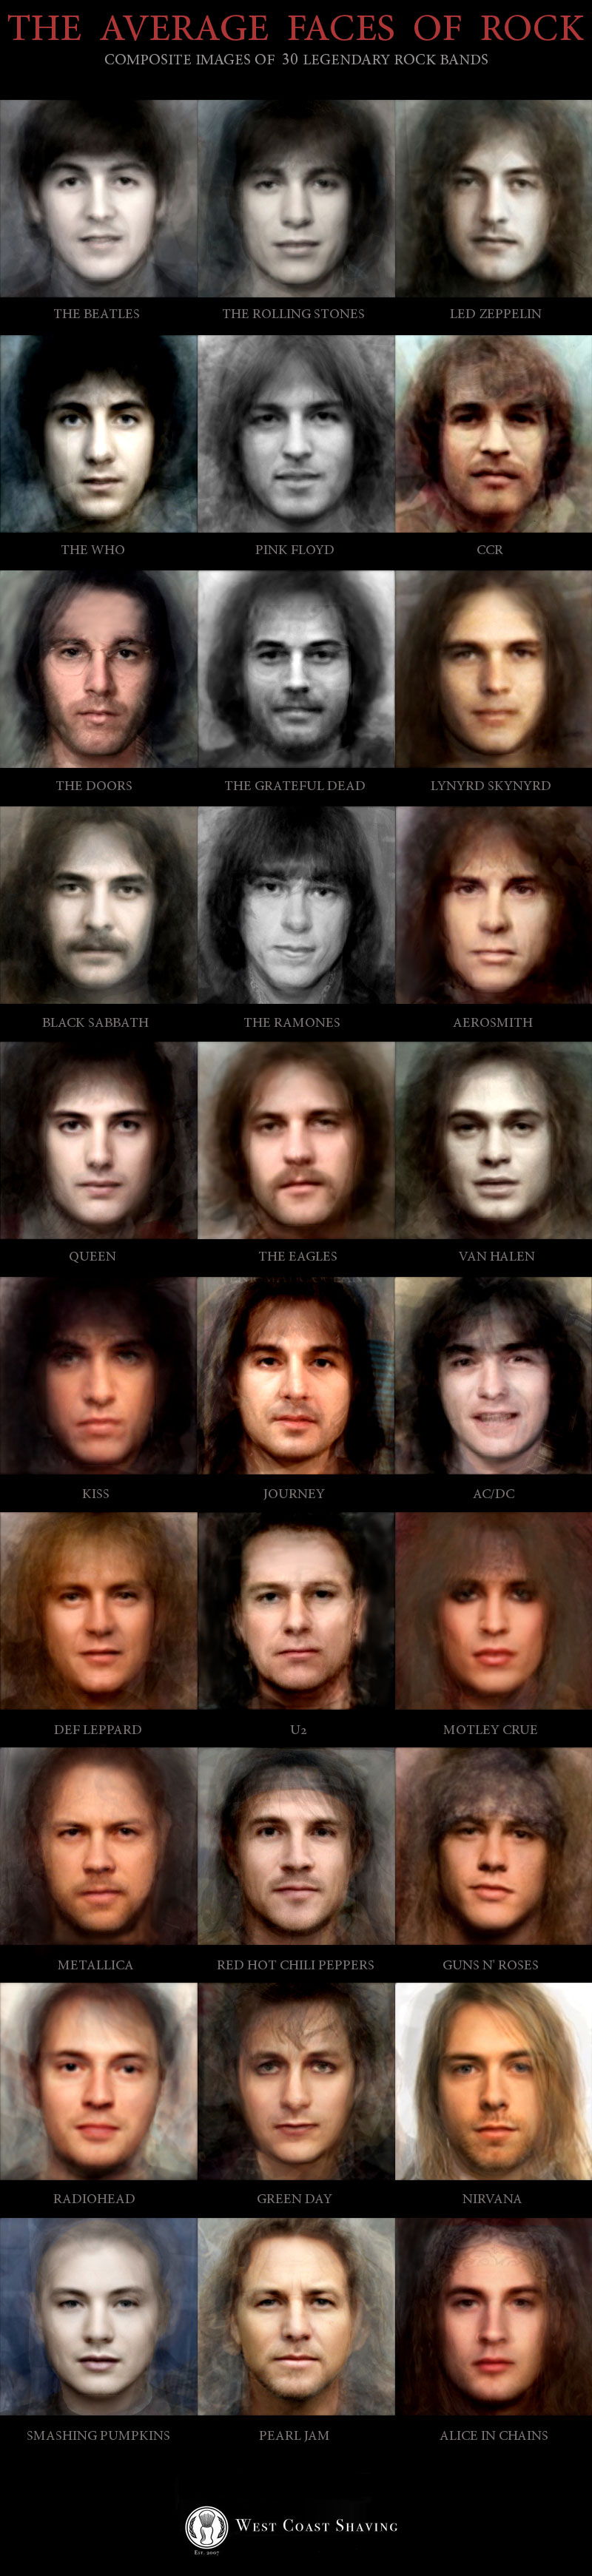 faces-of-rock